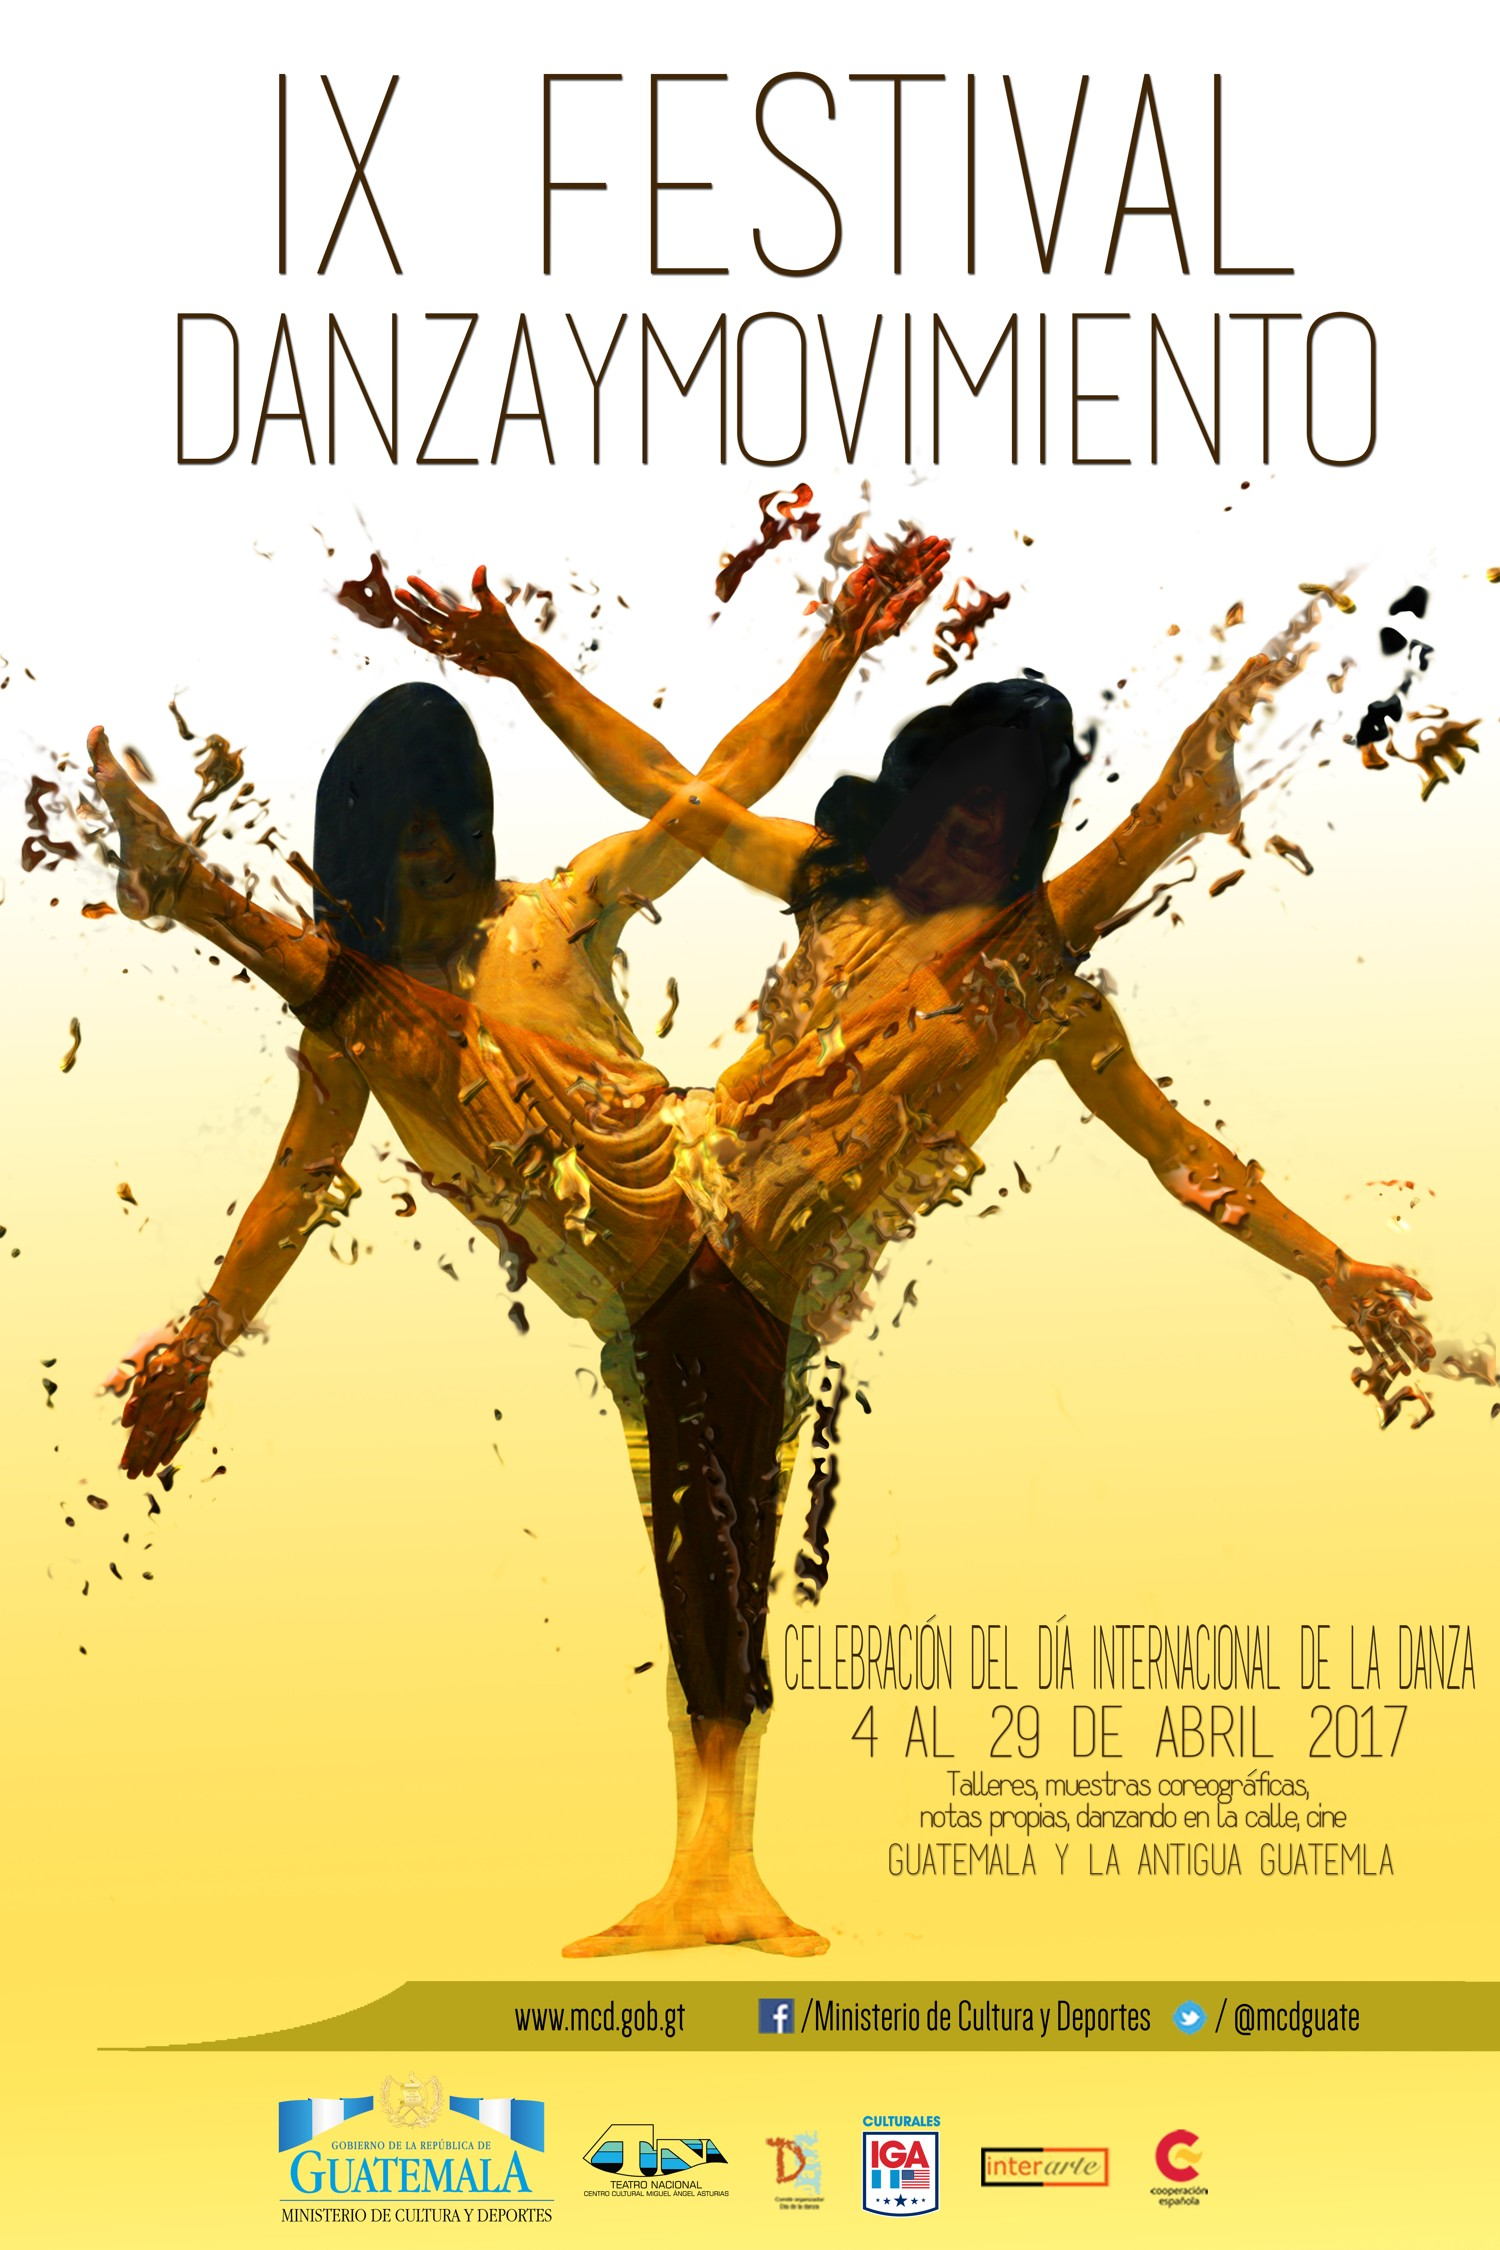 arte final festival danza y movimiento